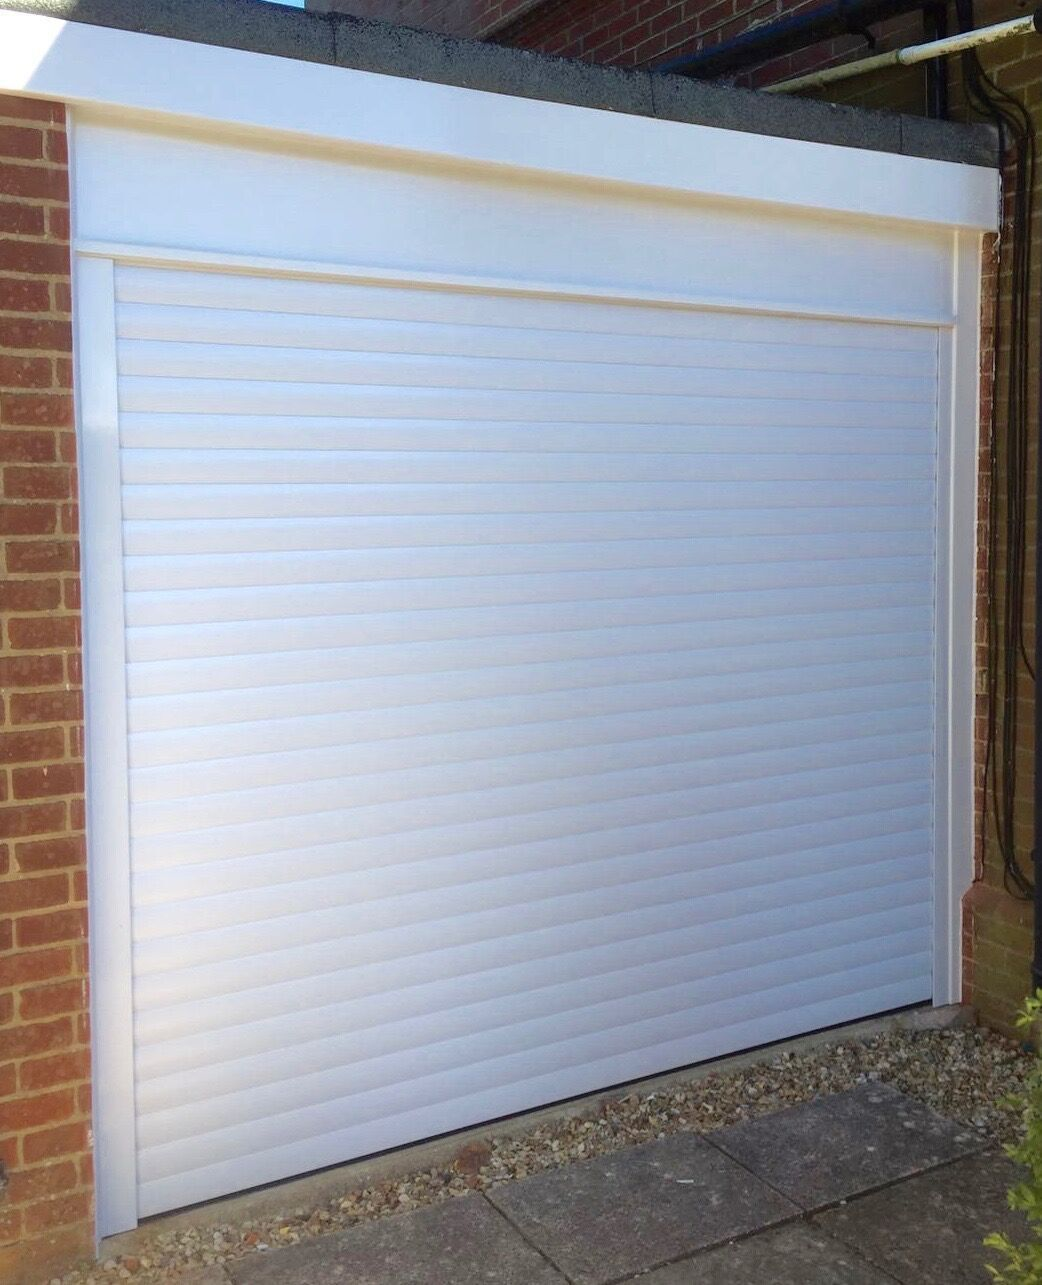 Roller Shutter Garage Door In White Roller Shutter Garage Doors